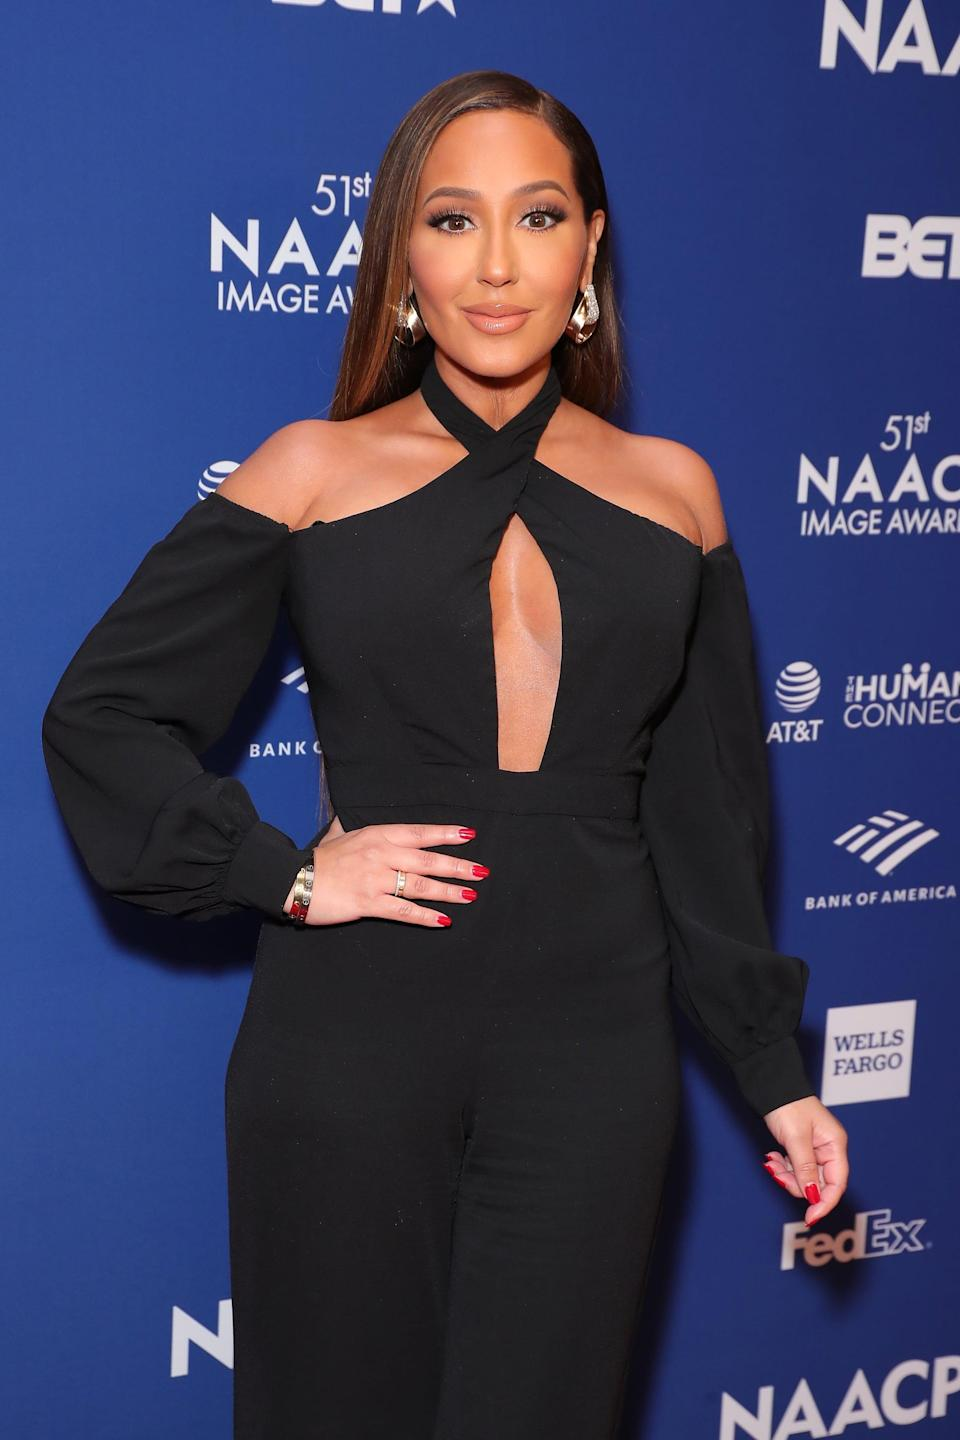 <p>Early <strong>Keeping Up With the Kardashians</strong> fans may be able to remember when the former Cheetah Girl got Rob Kardashian's full name tattooed on her butt. The two dated from 2007 to 2009, but Bailon had the tattoo removed in the years after their relationship ended.</p>